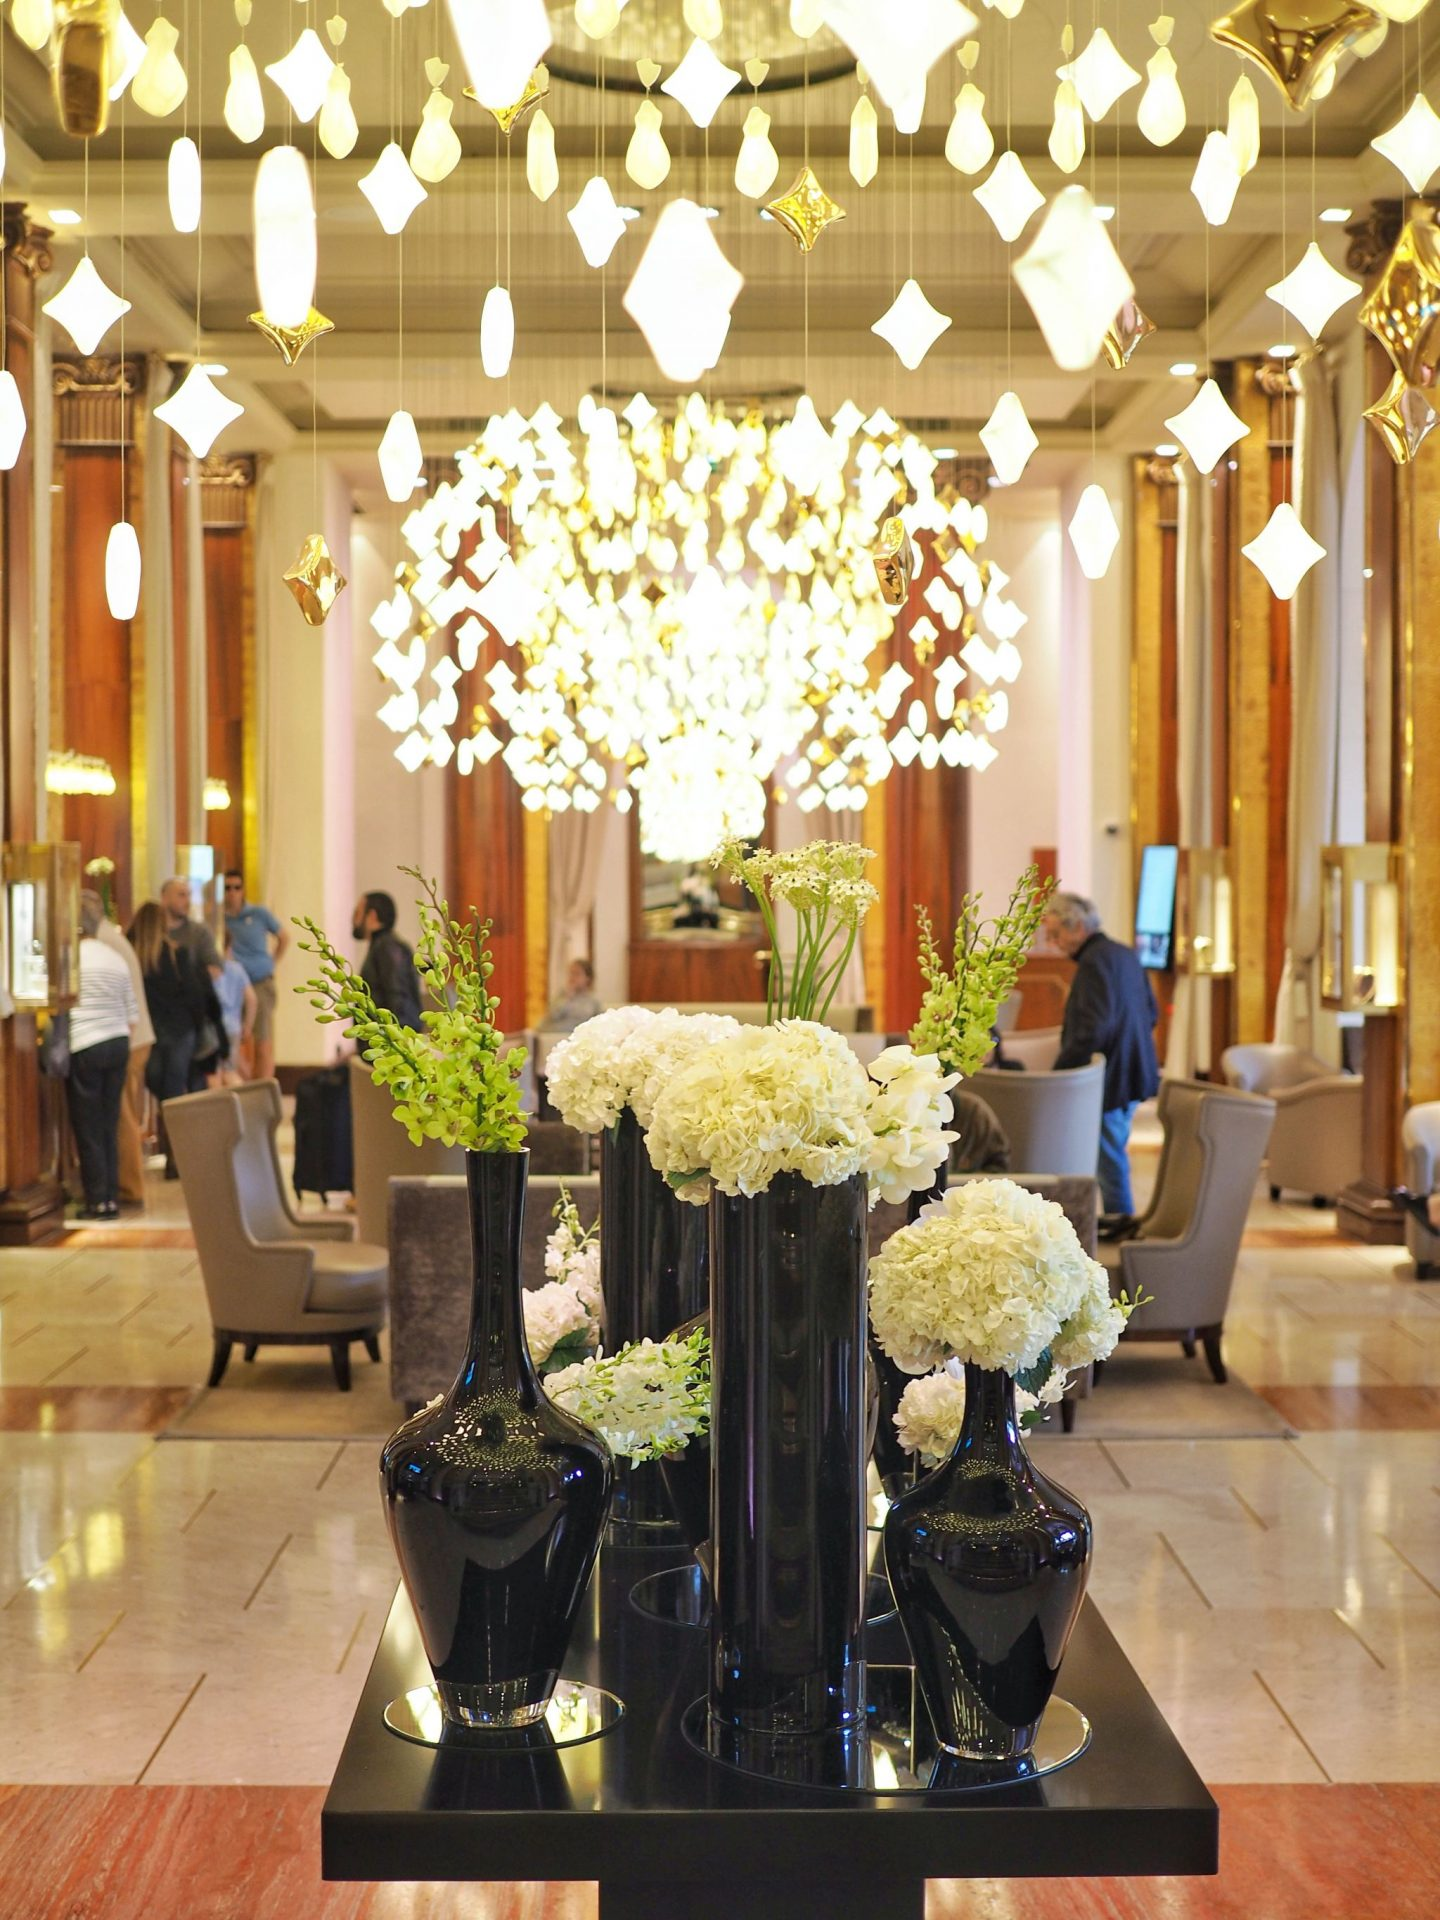 Hotel Barrière Le Majestic Cannes Lobby